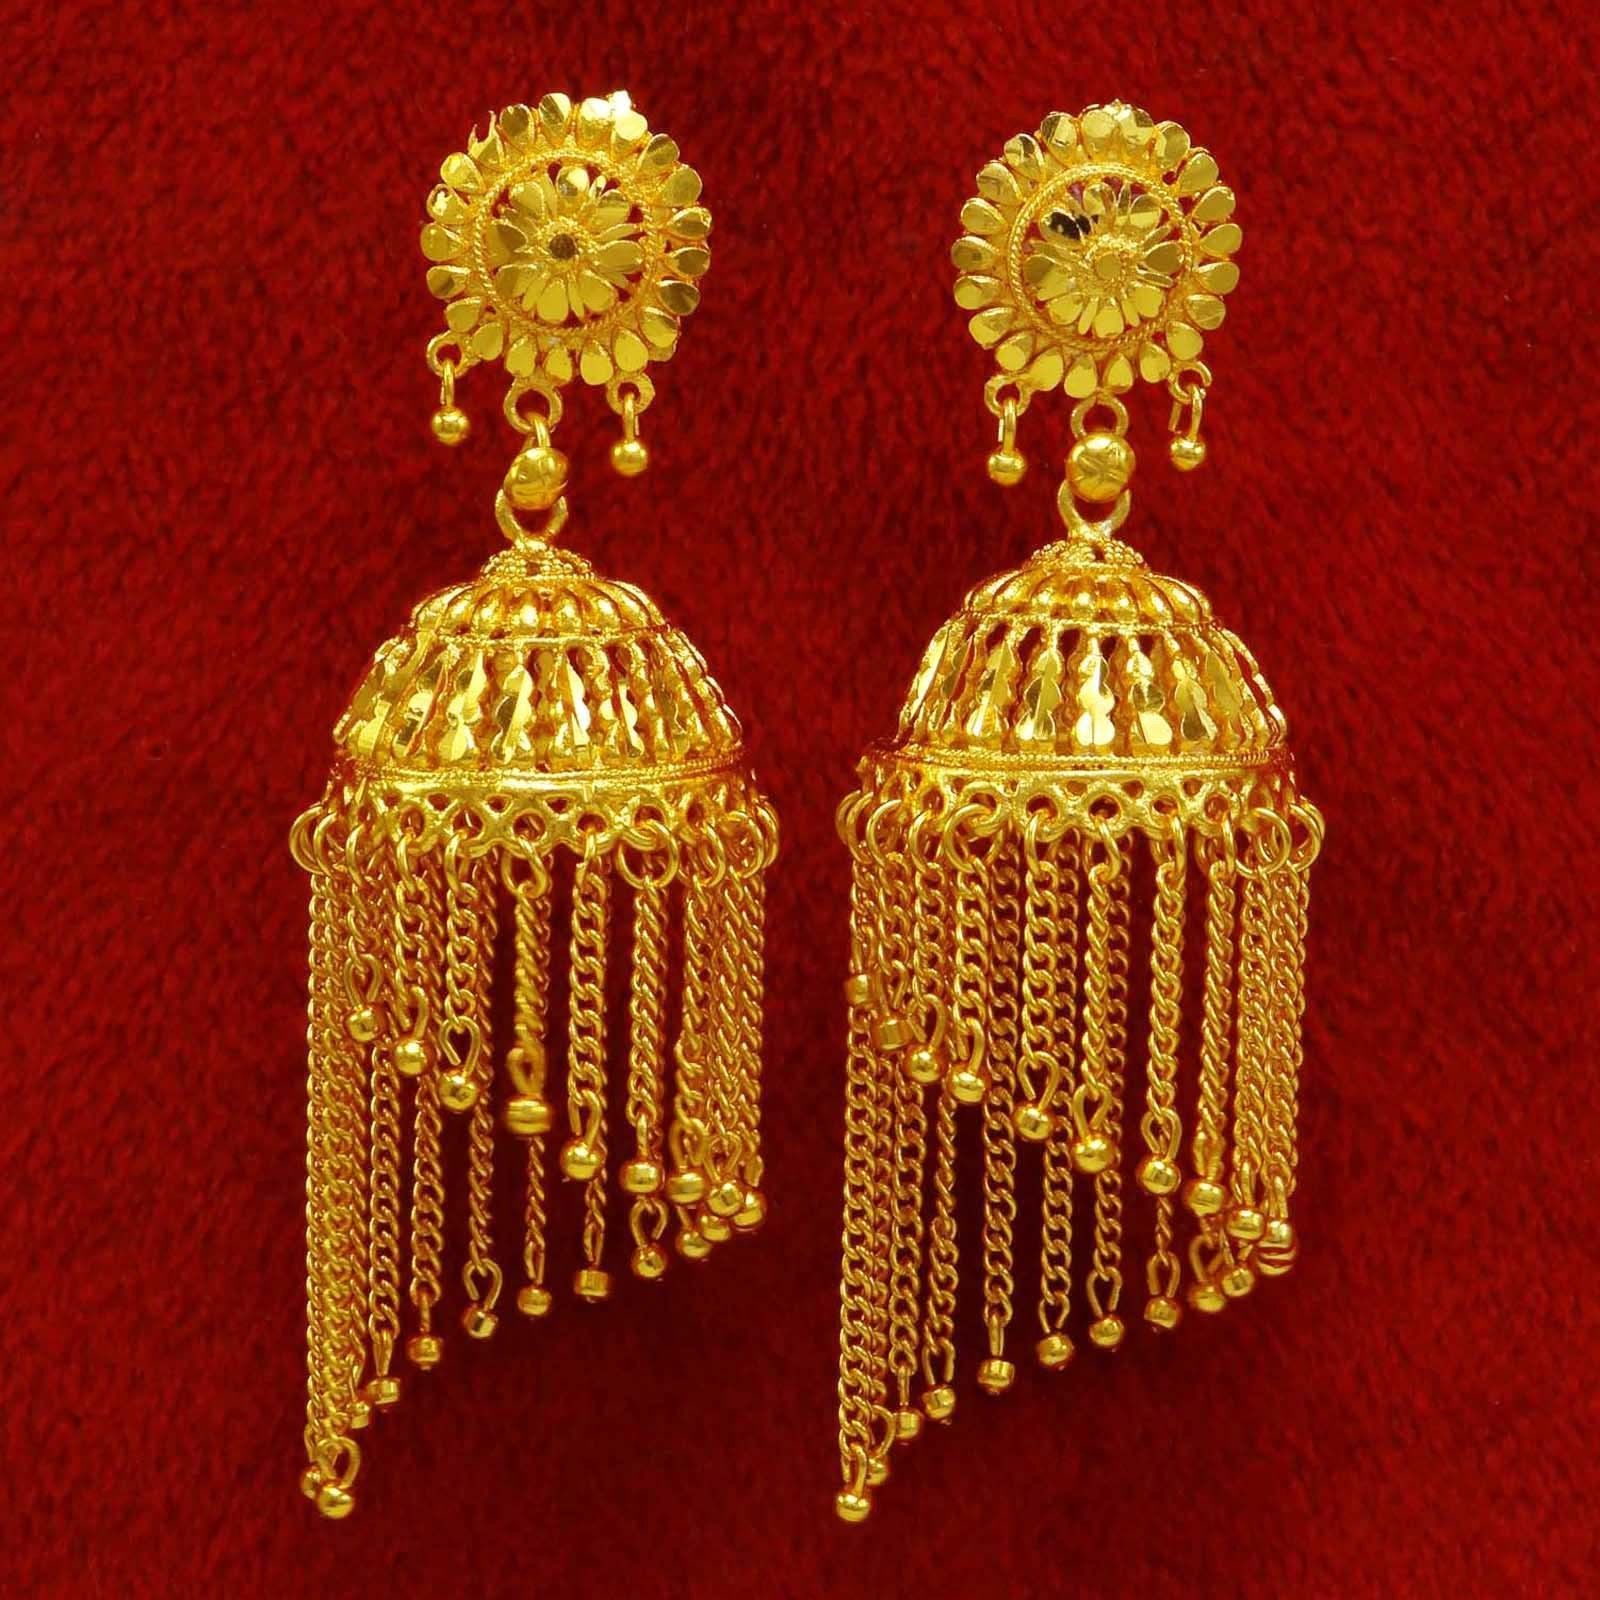 Details about Ethnic Indian Bollywood Gold Plated Earrings ...